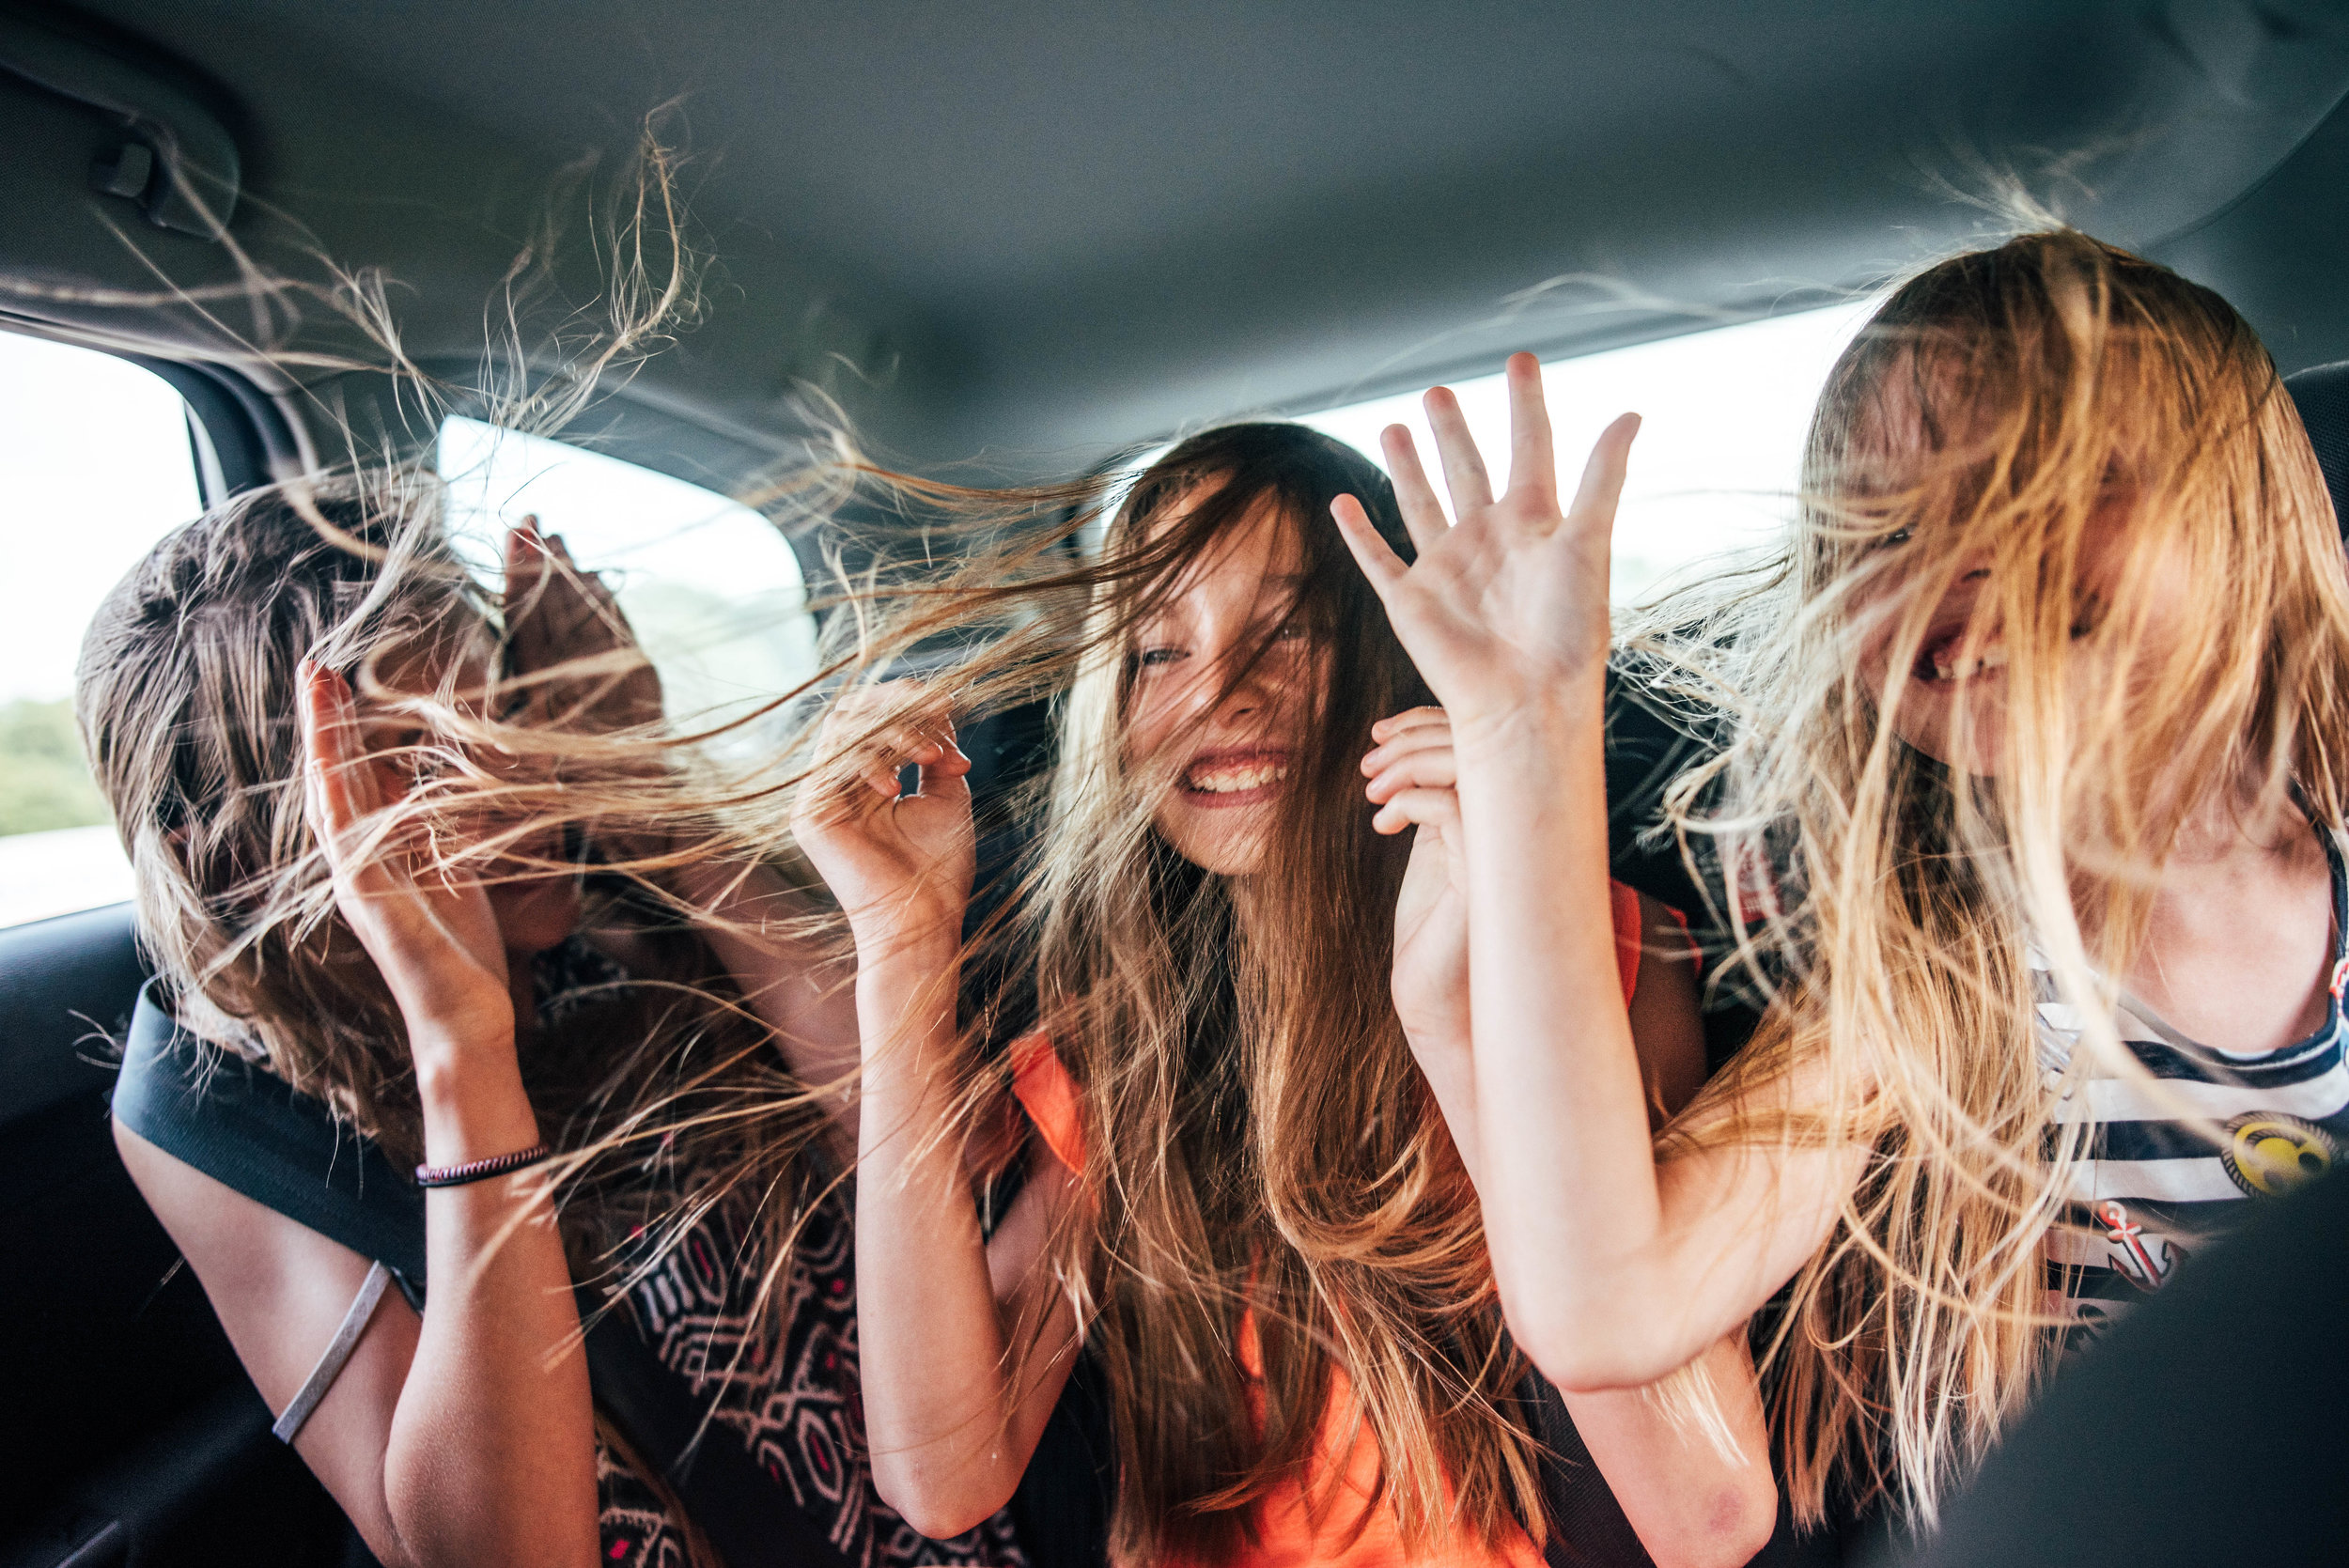 Three girls in back of a car with windows down, hair blowing Essex UK Documentary Portrait Photographer